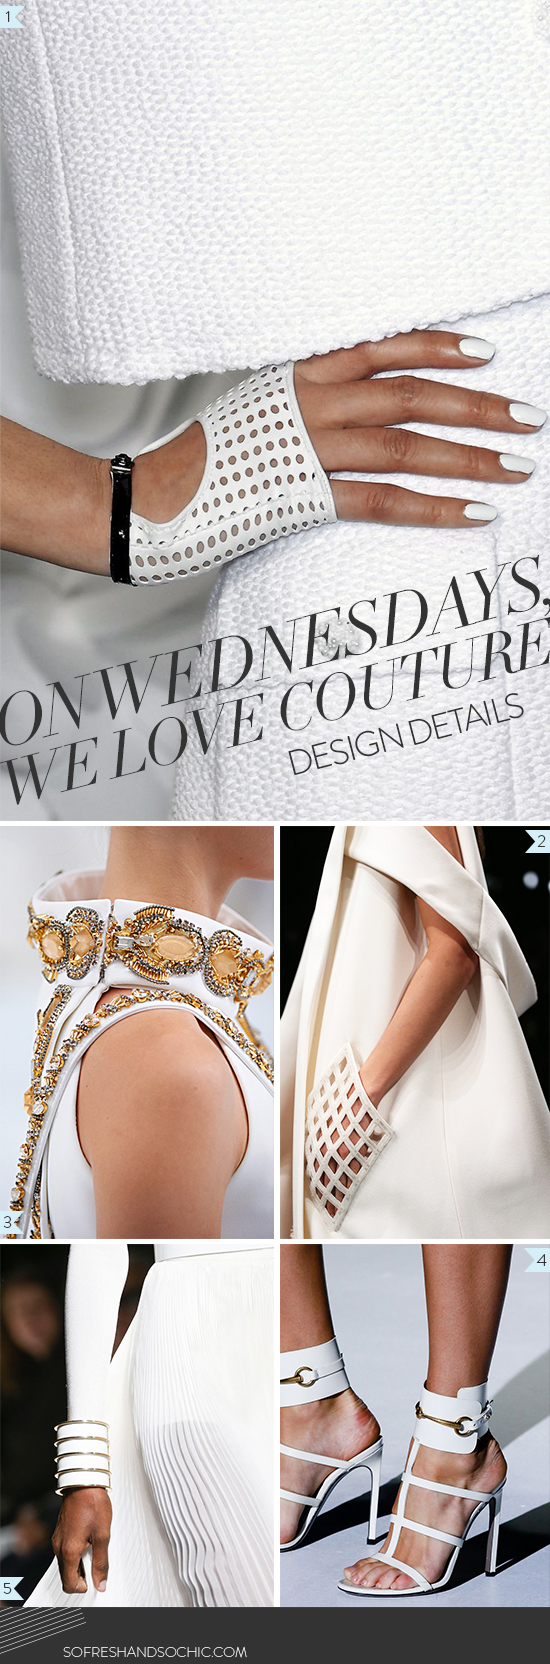 So Fresh & So Chic // Couture Fashion Details #sofreshandsochic #couture www.sofreshandsochic.com